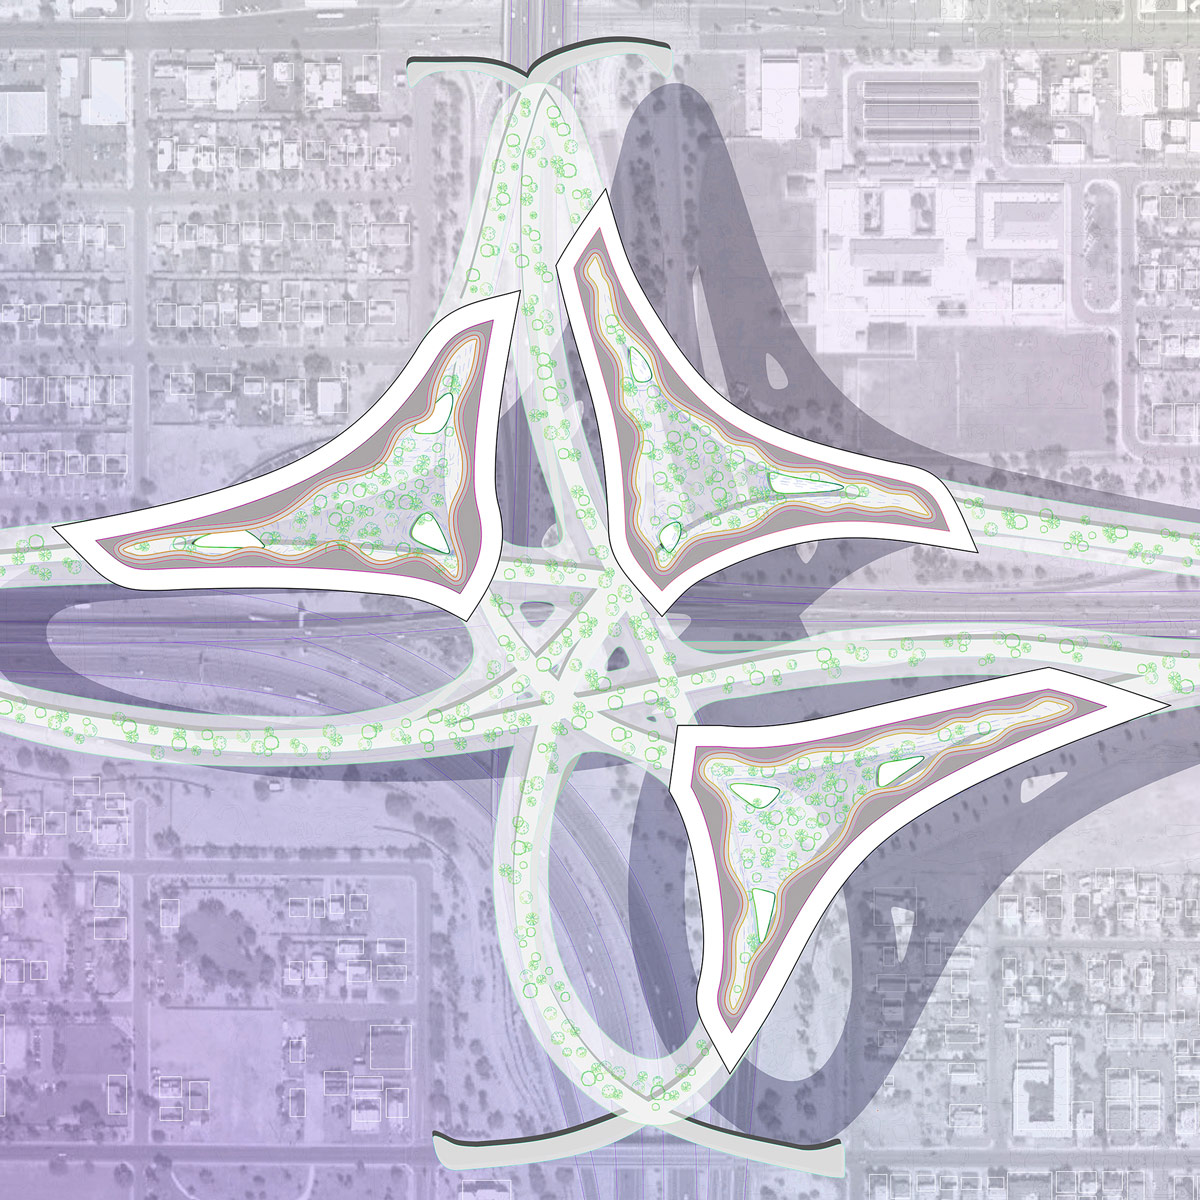 Urban plan illustrating a new lifted infrastructure above the highway interchange by student Genevieve Miller